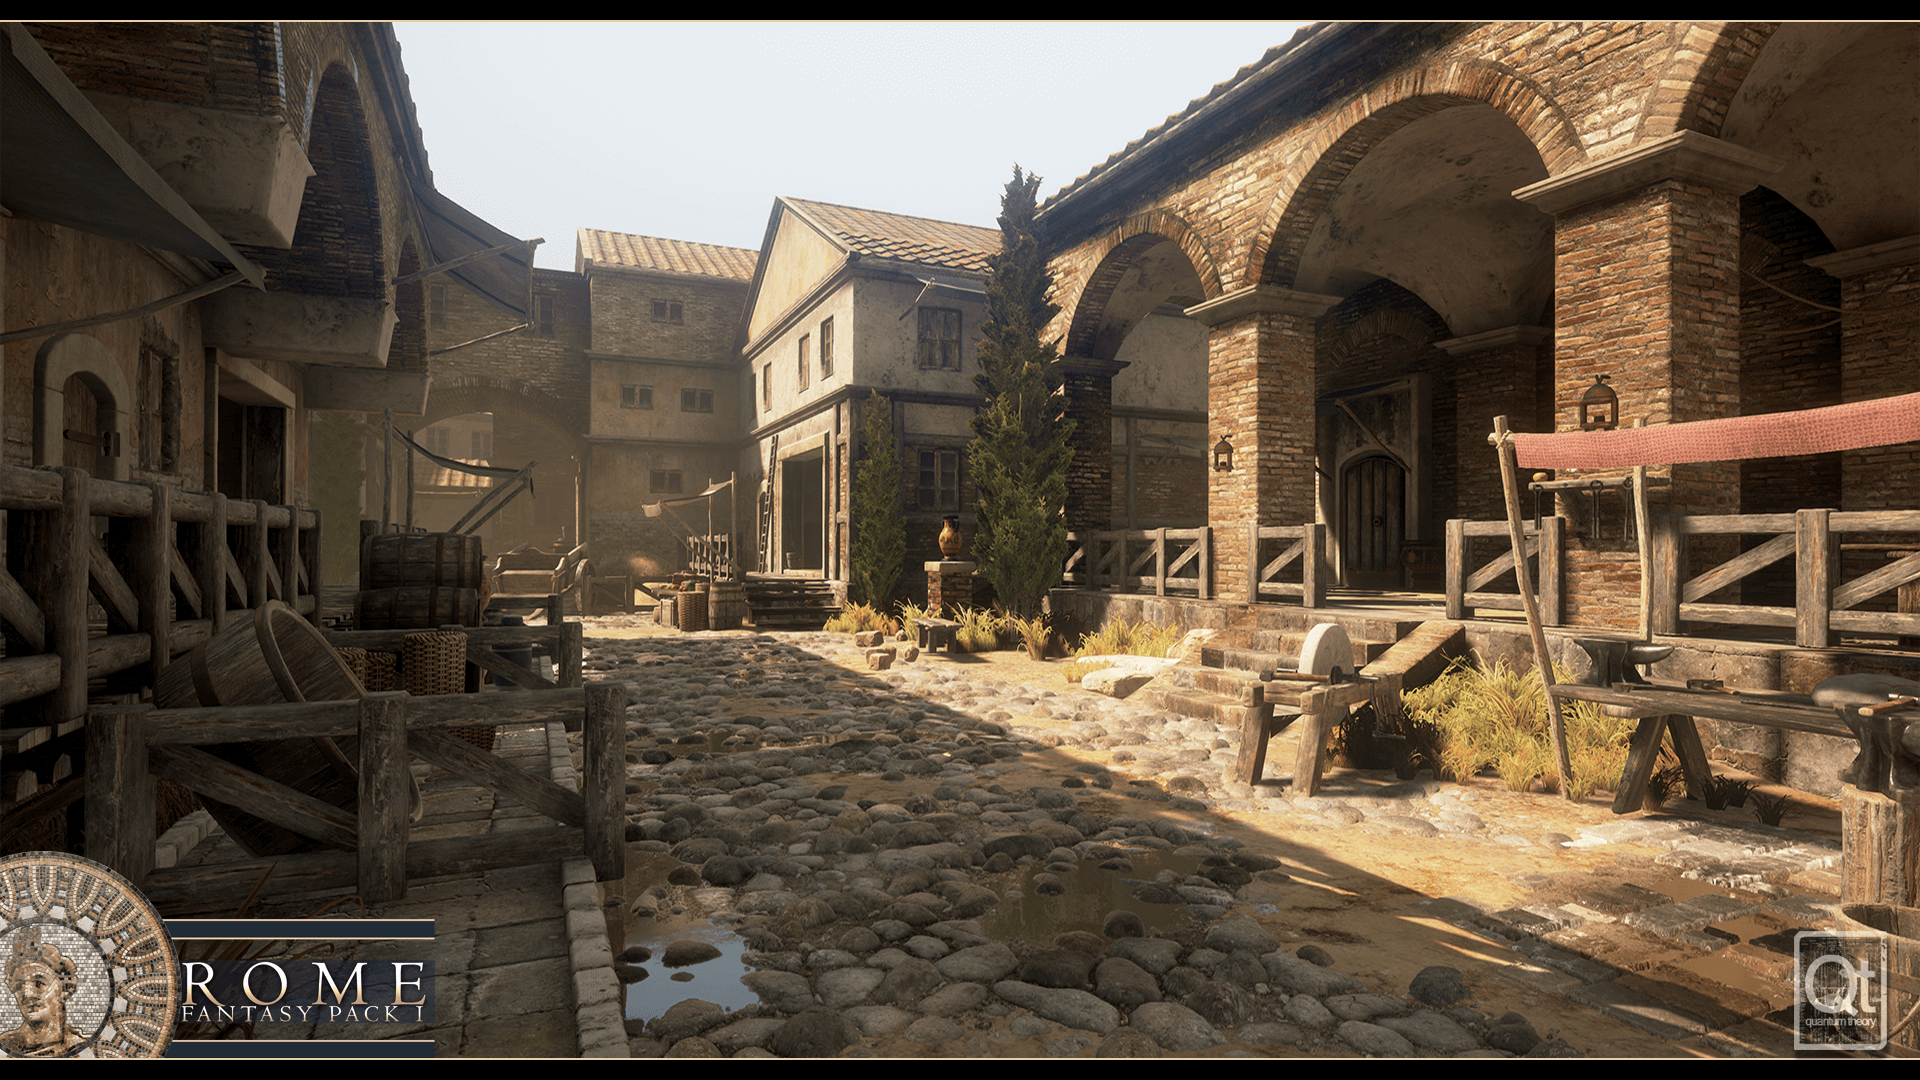 Rome Fantasy Pack I By Quantum Theory In Environments